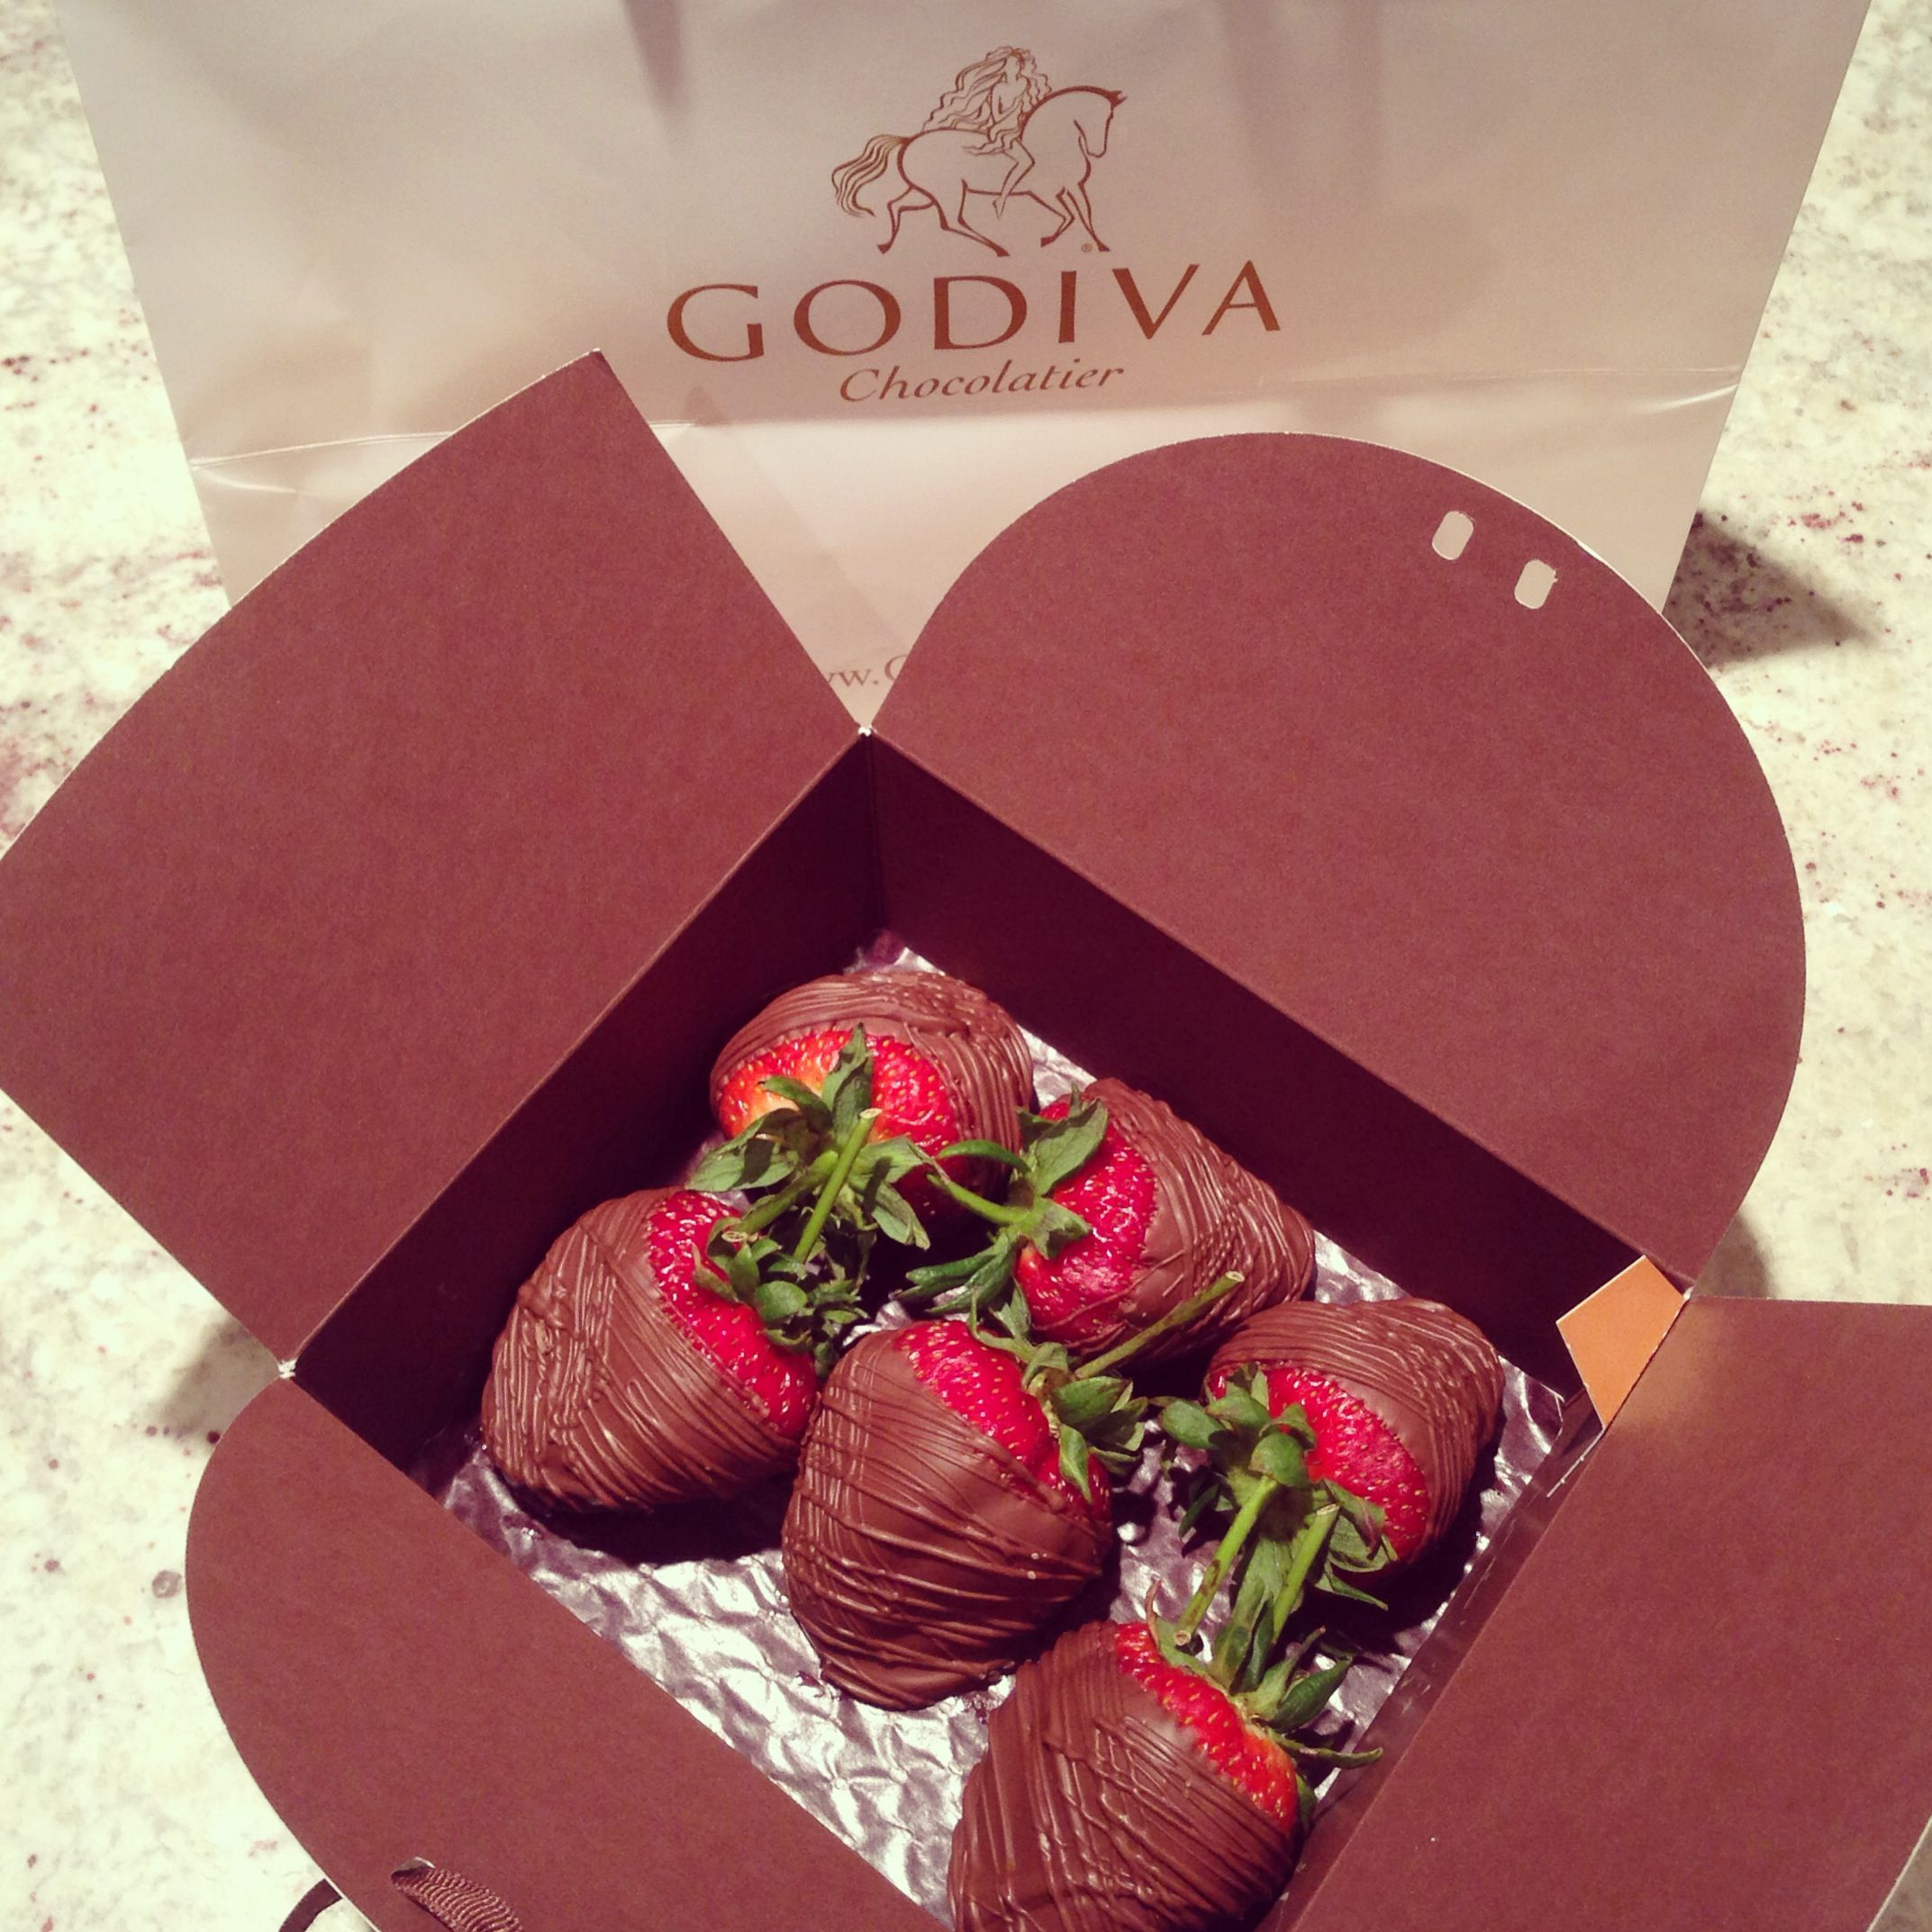 Chocolate covered strawberries #godiva | Sweet Tooth | Pinterest ...